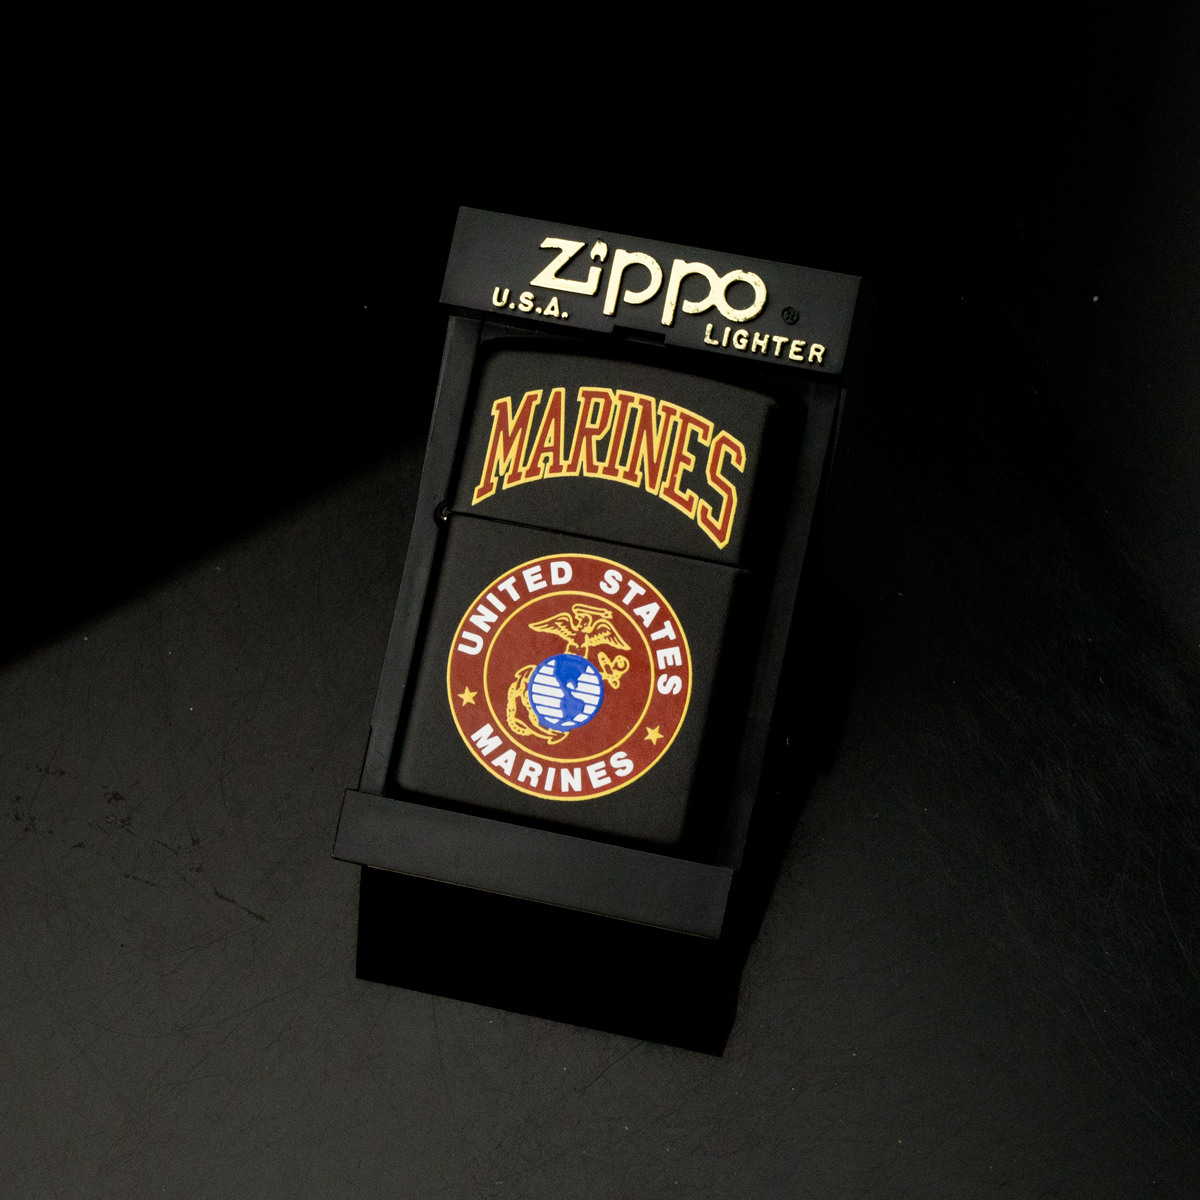 hot-quet-zippo-united-states-marines-thuy-quan-luc-chien-my-xiv-1998